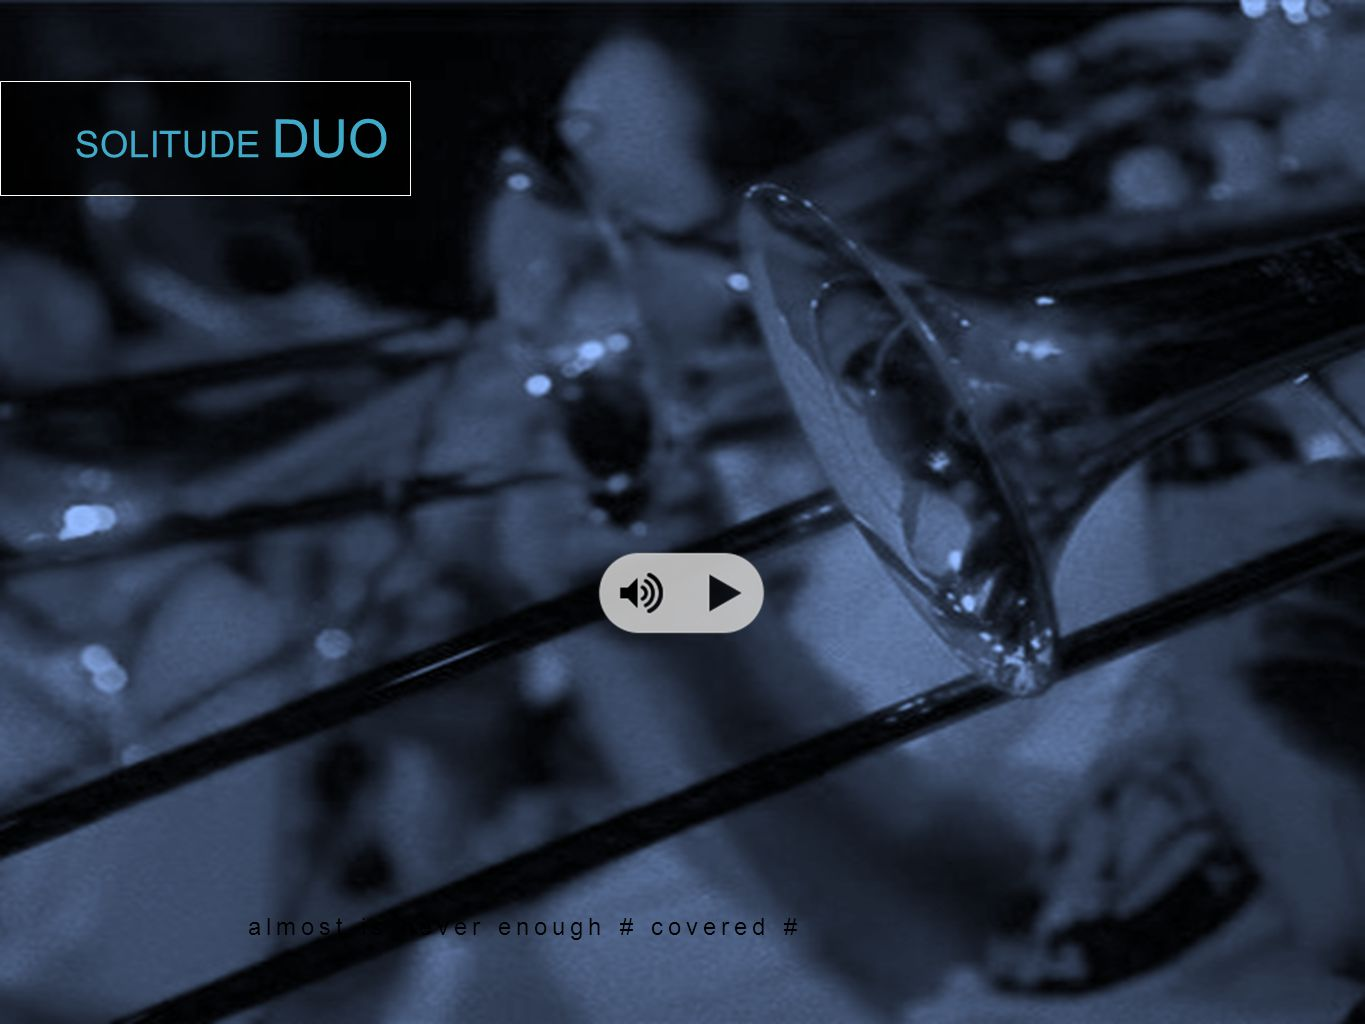 SOLITUDE DUO S EGMENTATION > 20 Years Old Male & Female P ROJECT P LA N Accoustic Covered Songs EP or Mini Album